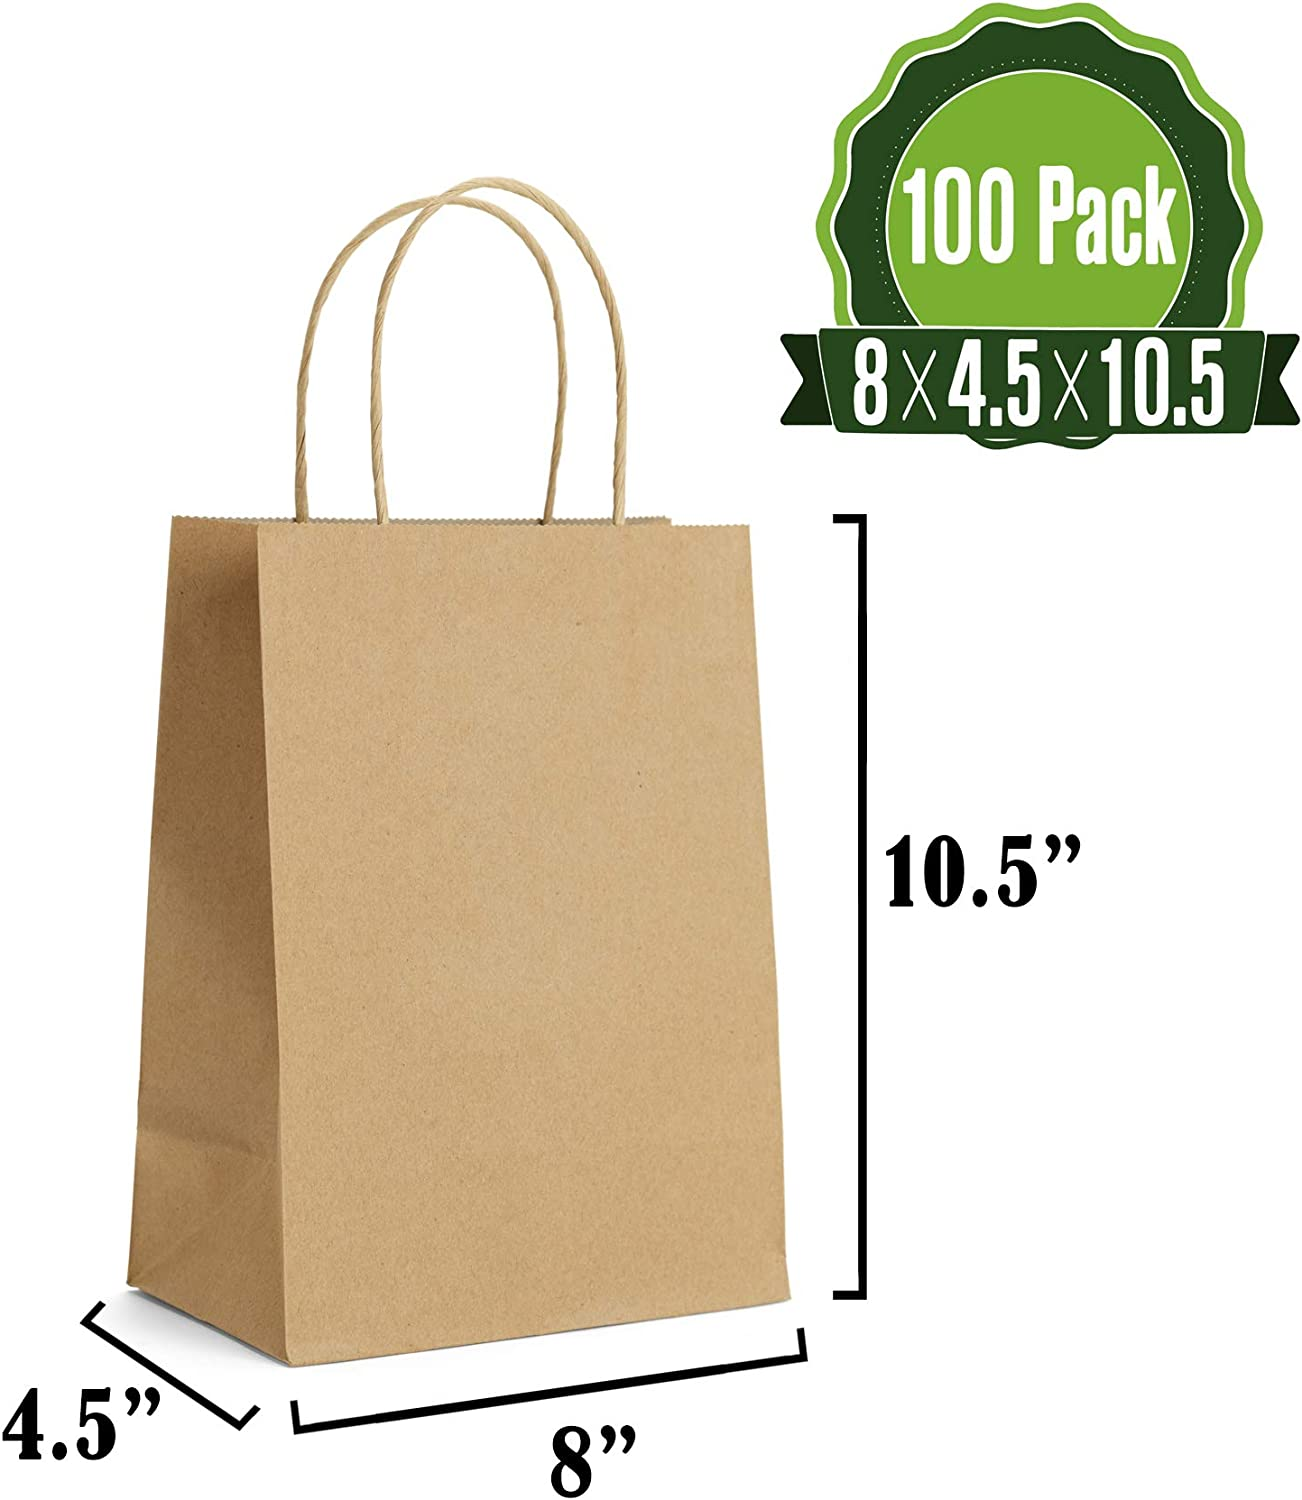 Brown Kraft Paper Gift Bags Bulk with Handles 8 X 4.5 X 10.5 [100Pcs]. Ideal for Shopping, Packaging, Retail, Party, Craft, Gifts, Wedding, Recycled, Business, Goody and Merchandise Bag